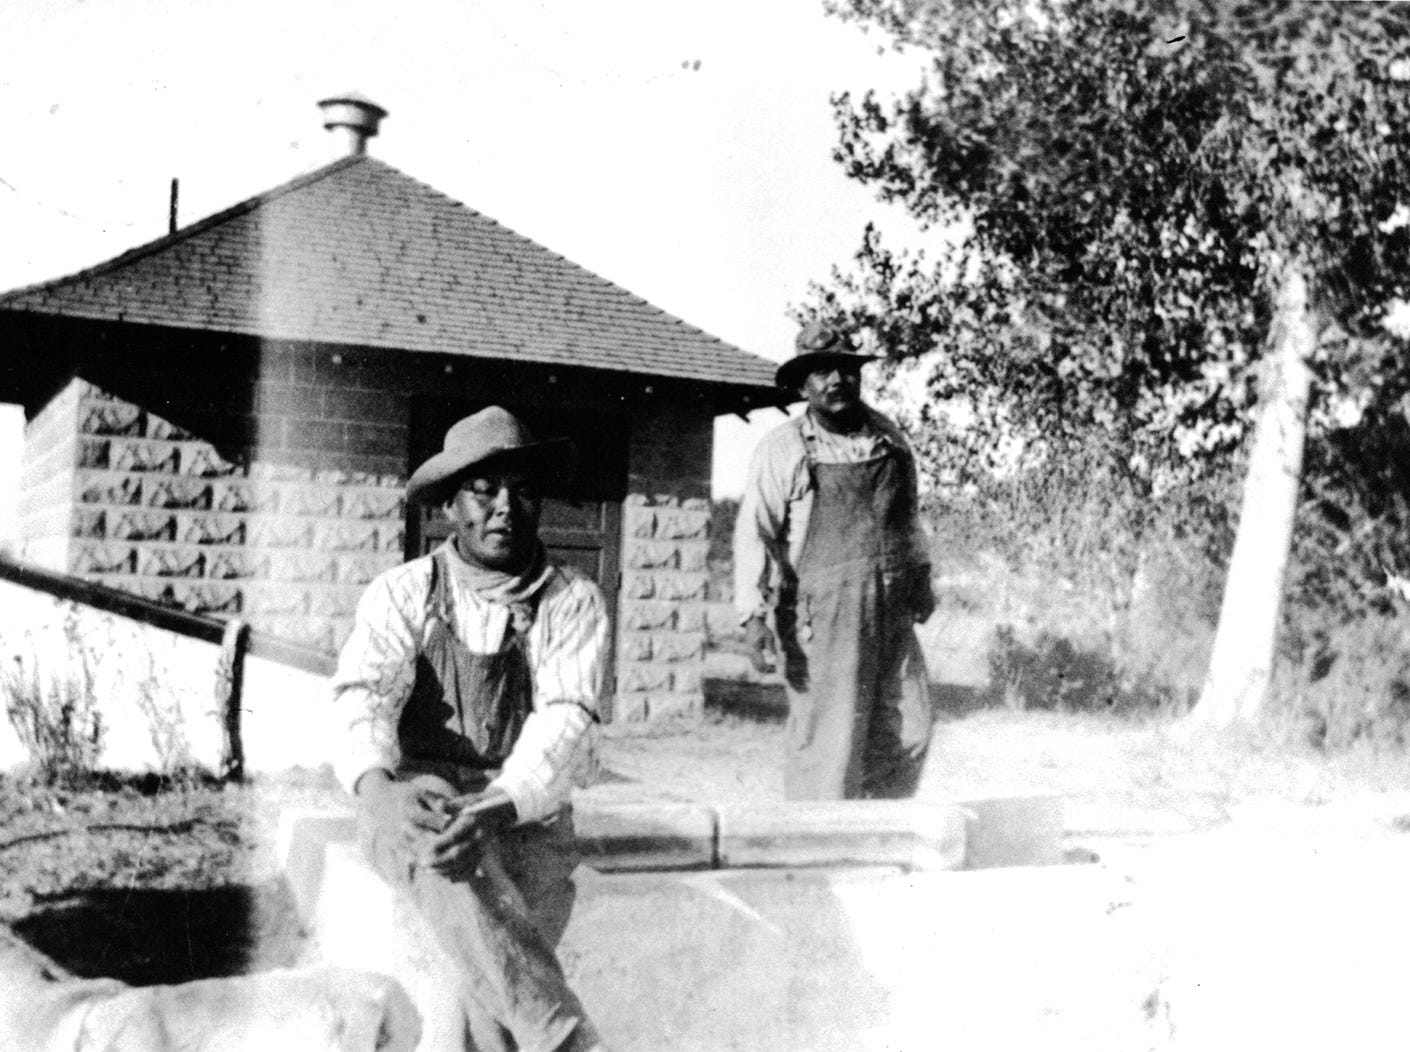 Members of the Augustine tribe stand in front of a pump house on the reservation in Coachella in this undated photo.